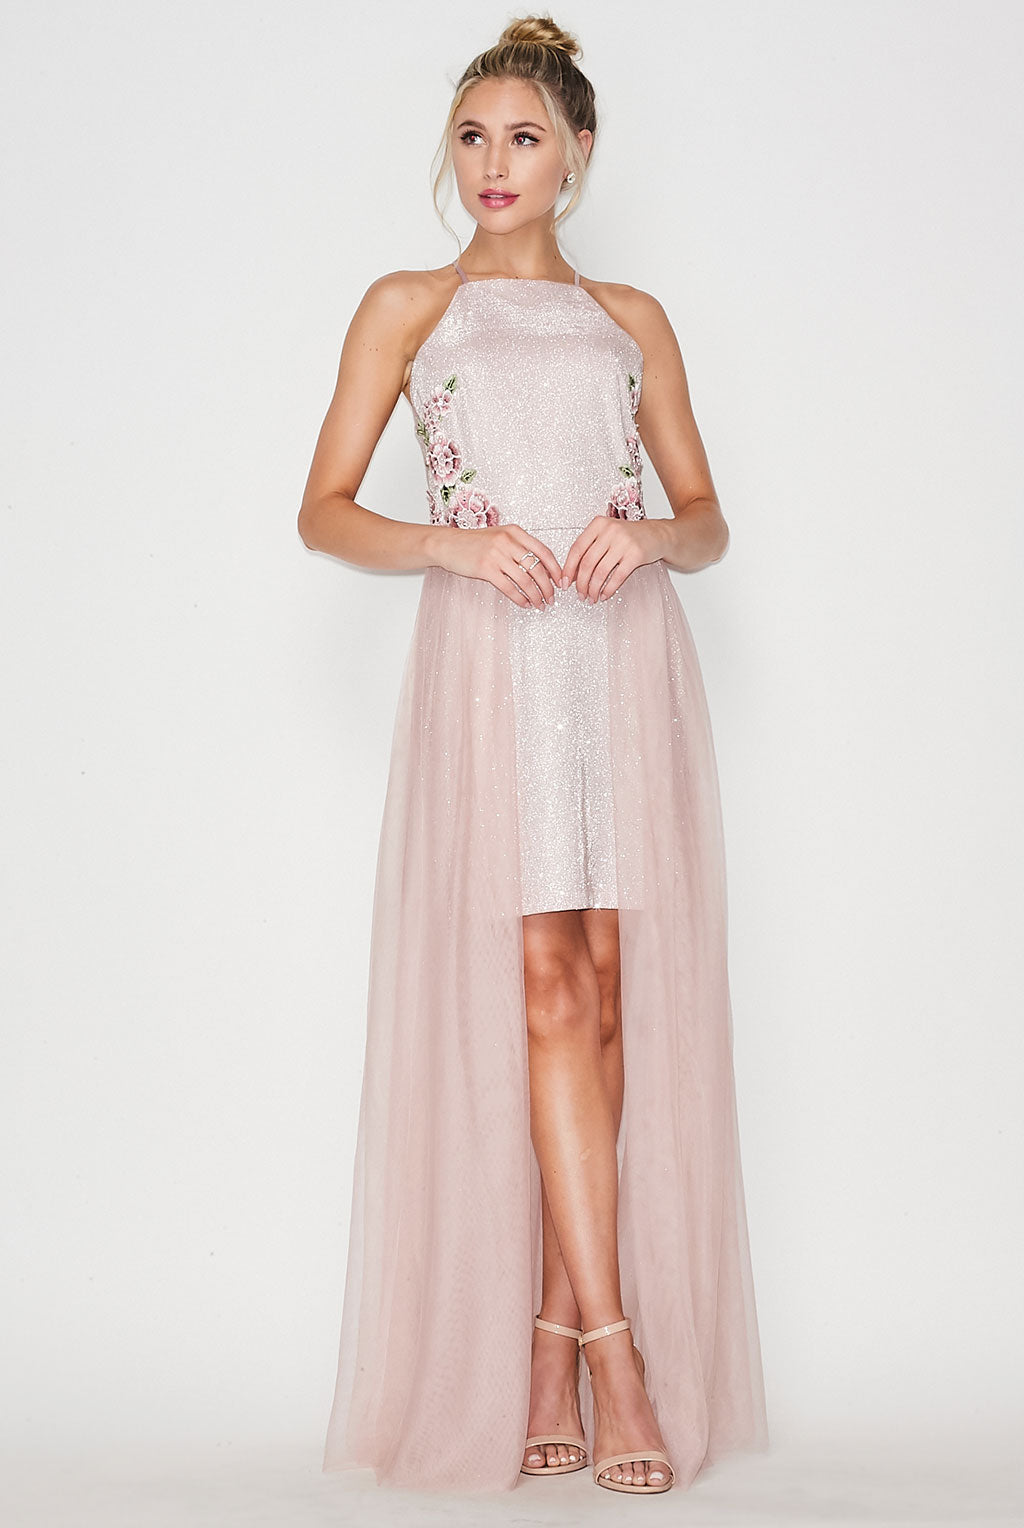 Teeze Me | Halter Top Embroidery Side W/ long Side Mesh Dress | Blush